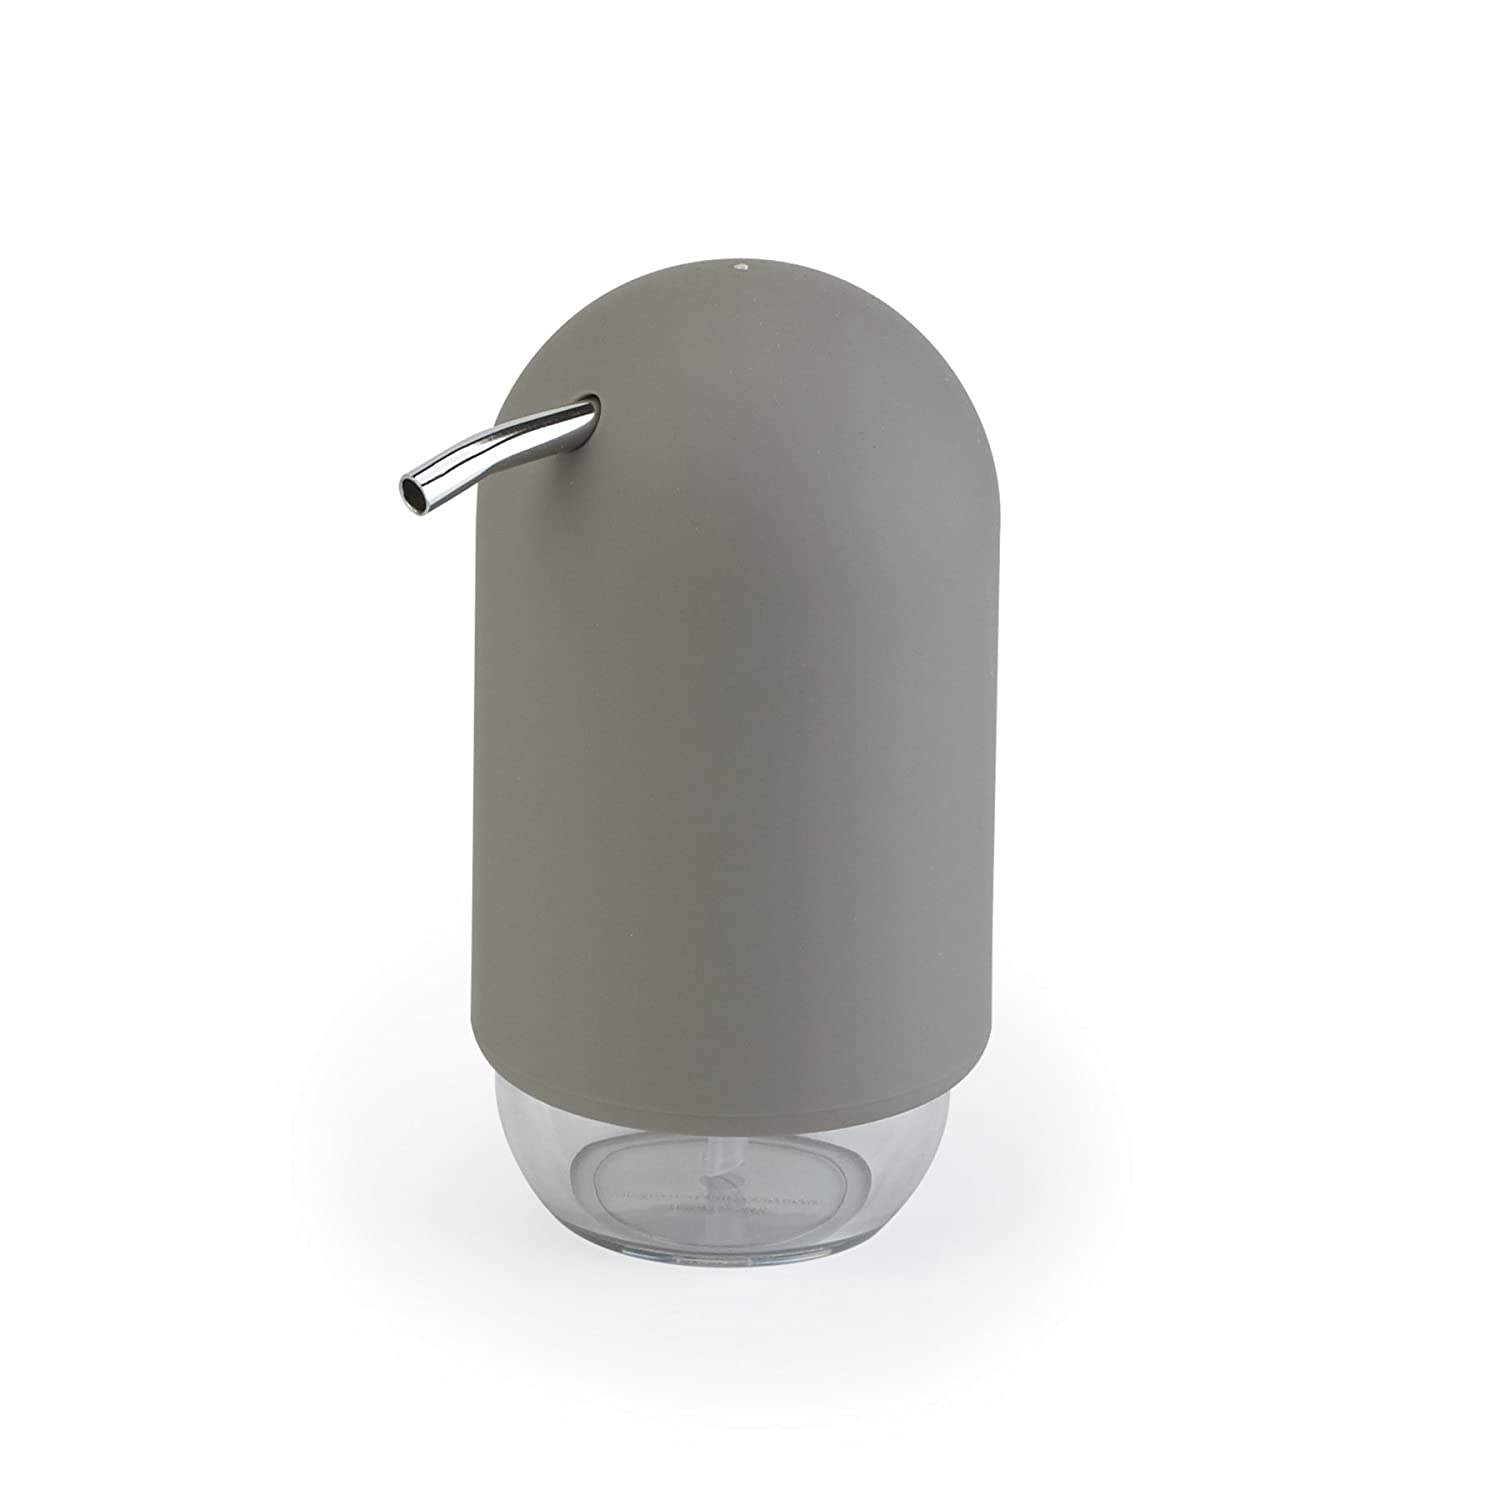 Umbra Touch Soap Pump, Grey by Umbra